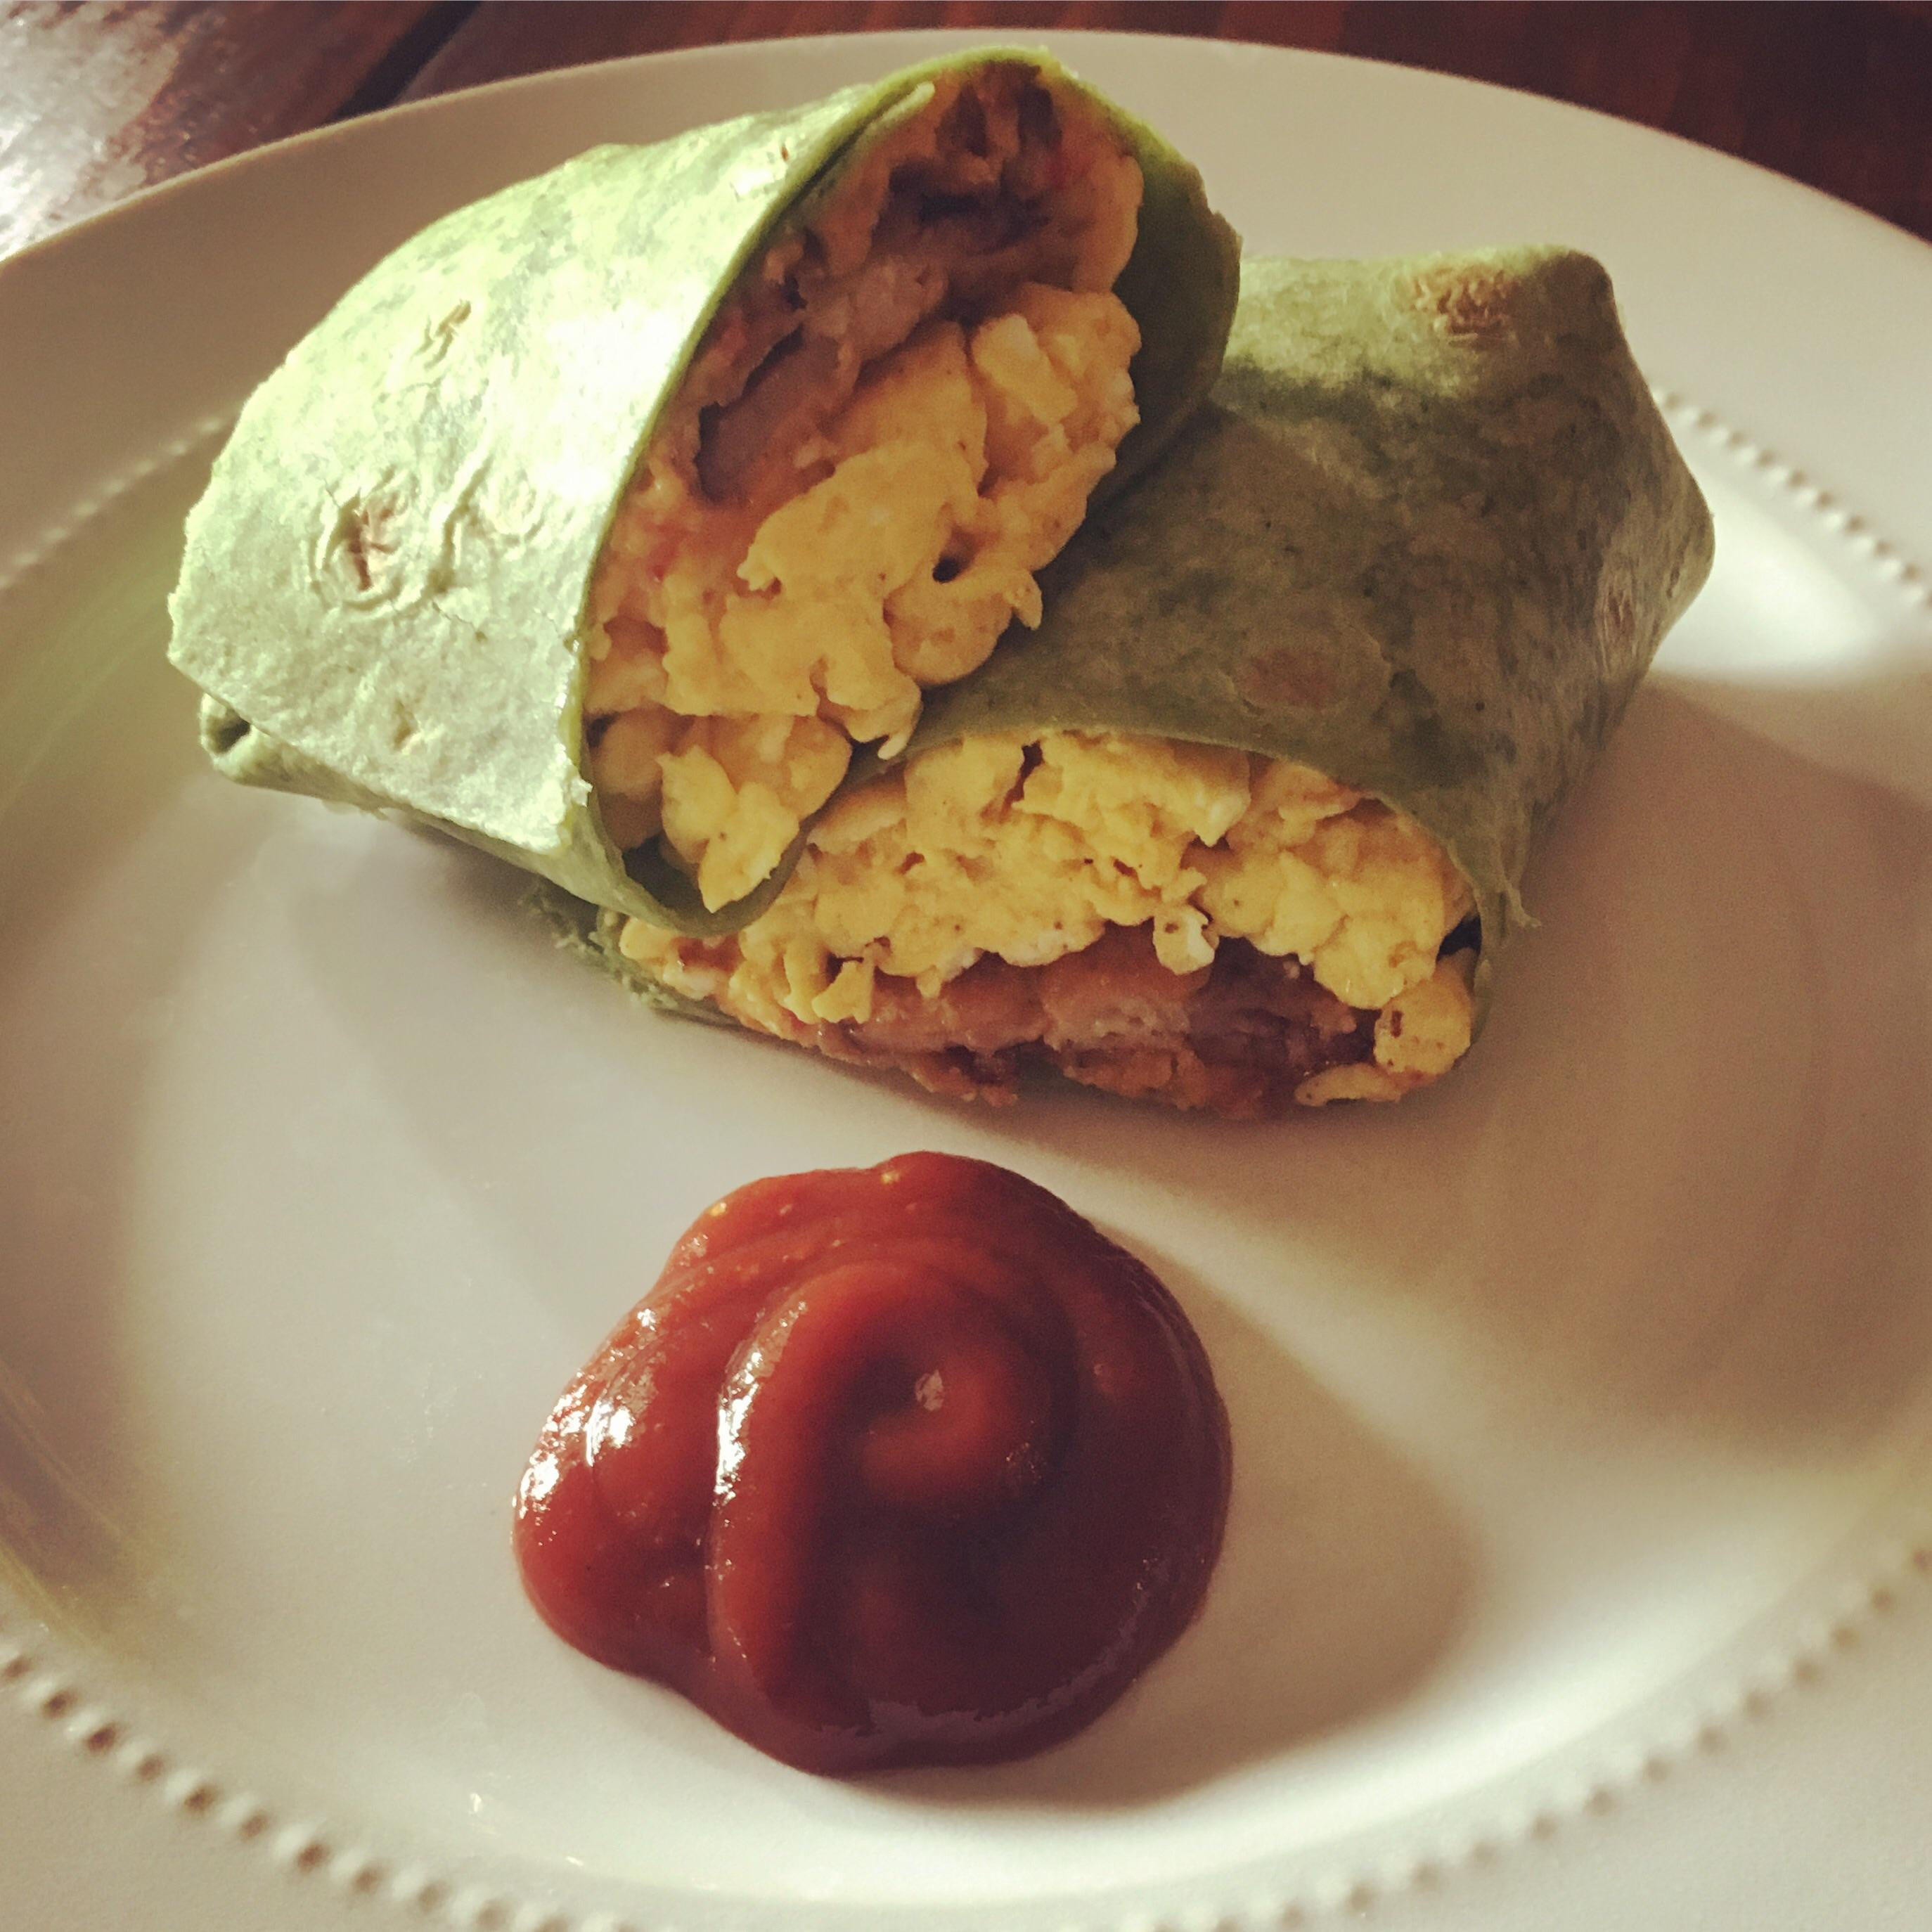 Upscale Green Jacket Breakfast Burrito On Masters Kenfried Pimento Wrapped A Spinach Green Jacket Breakfast Burrito On Masters Eggs Ken Fried Bacon Youtube Ken Fried Bacon On A Stick nice food Chicken Fried Bacon